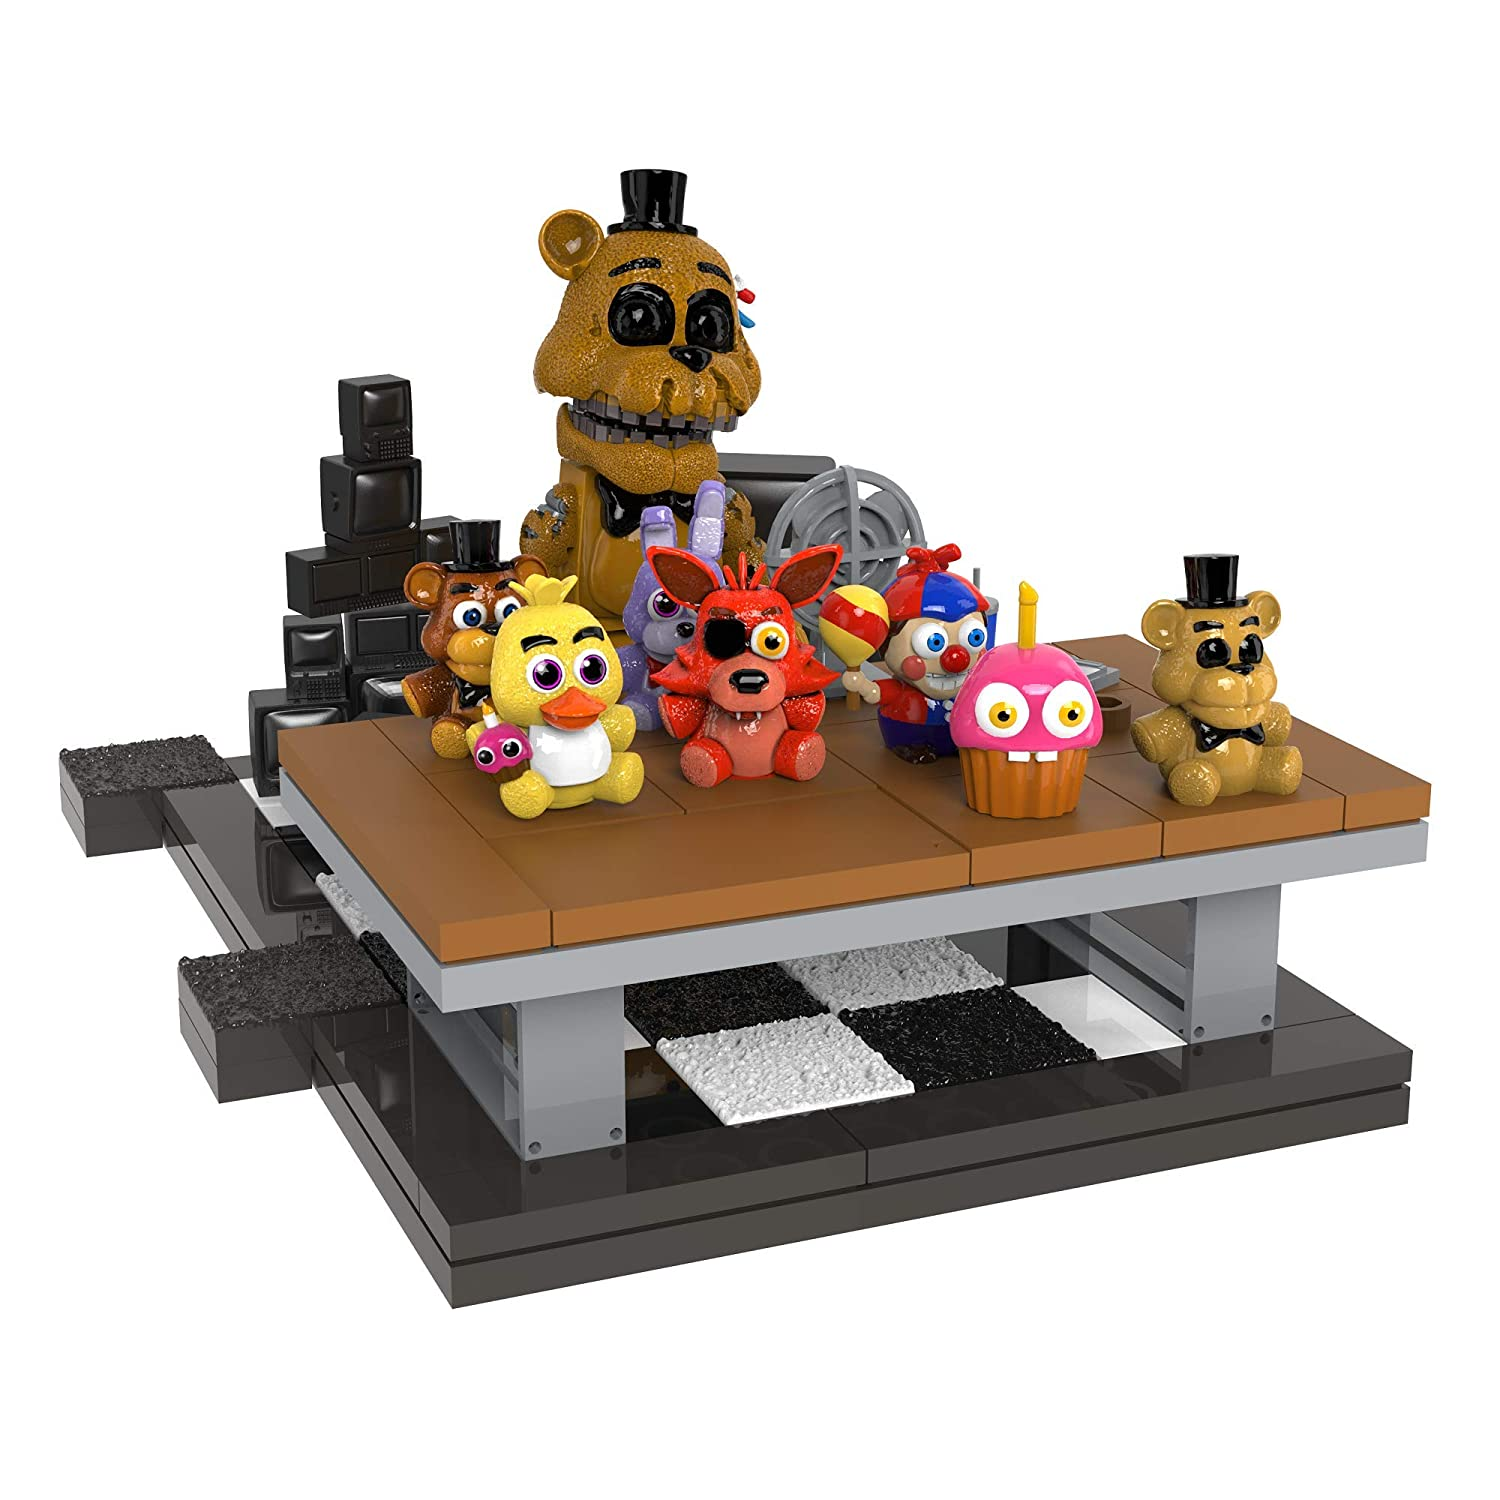 McFarlane Toys Five Nights at Freddy's Office Desk Small Set